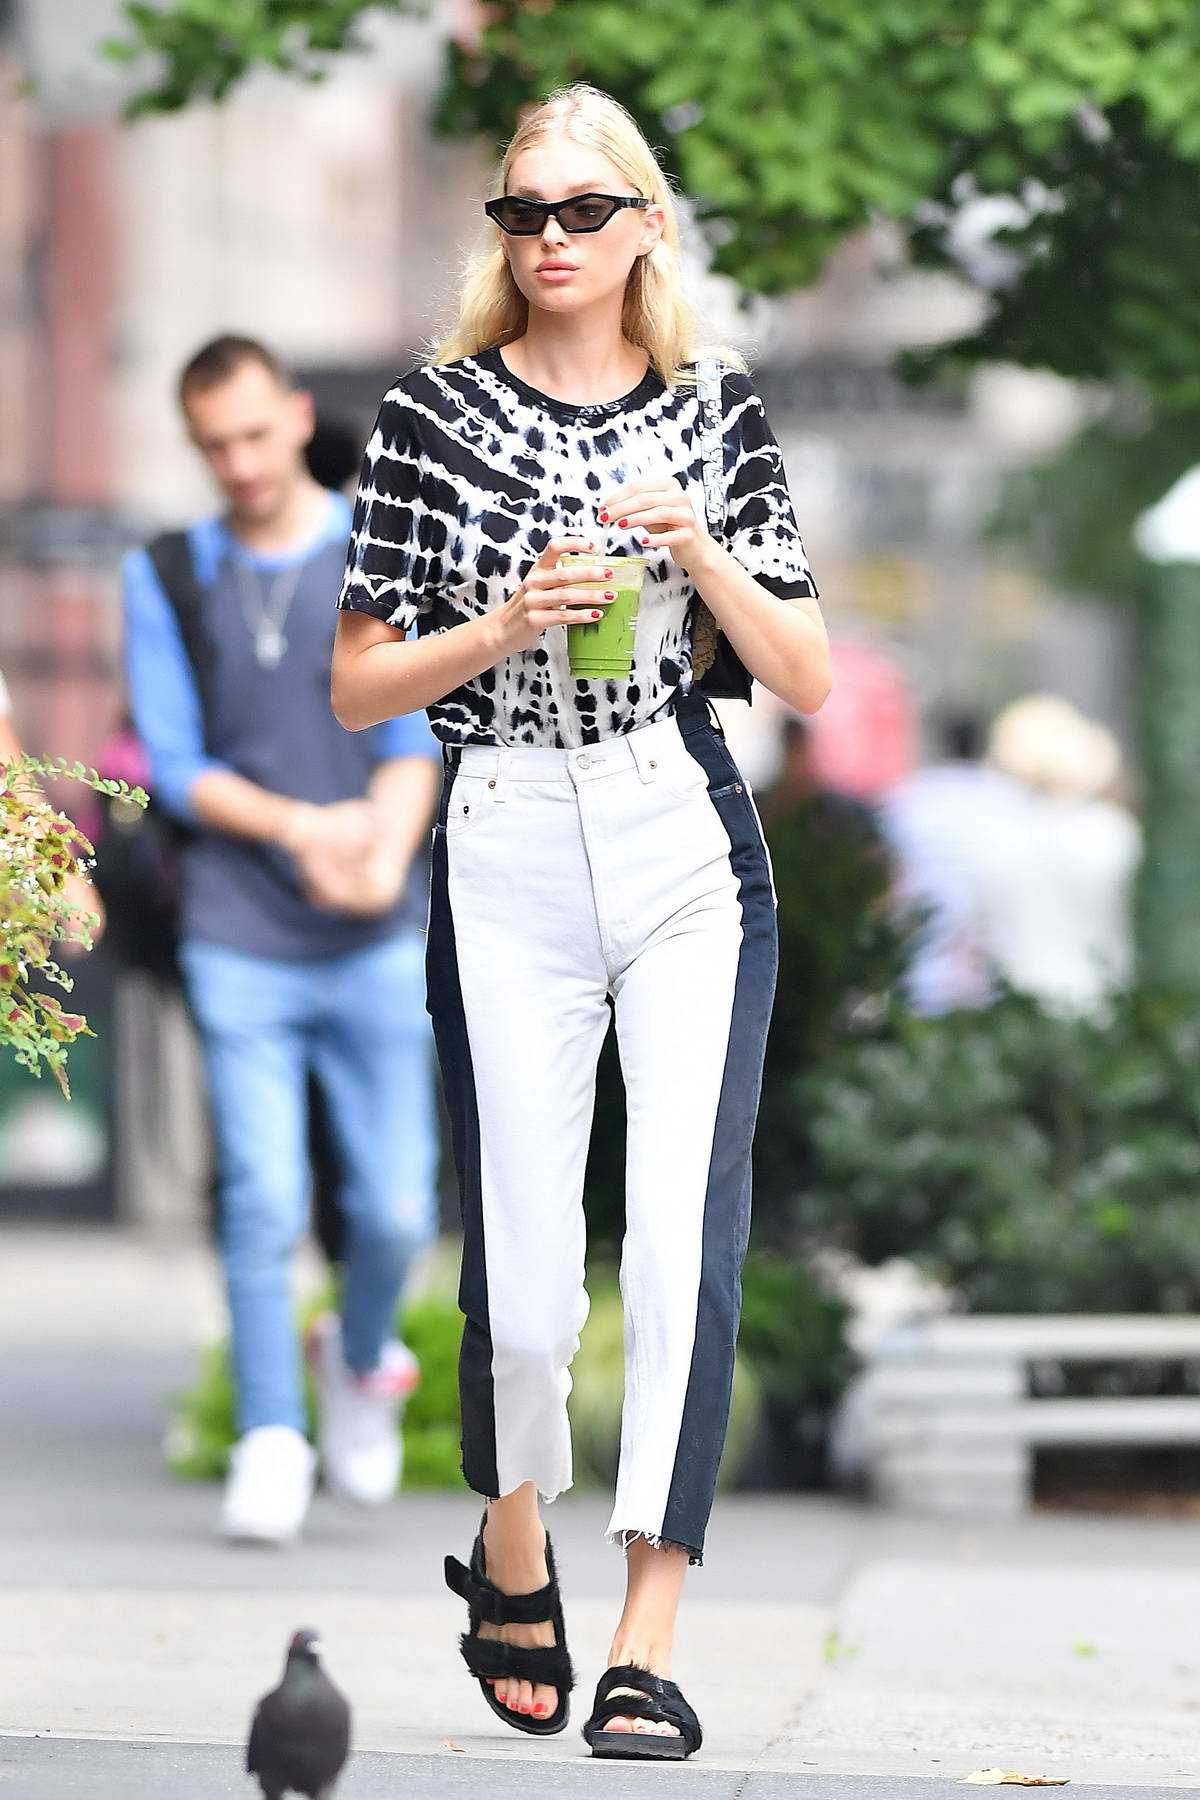 Elsa Hosk looks stylish in a tie-dye top as she steps out for a stroll in New York City